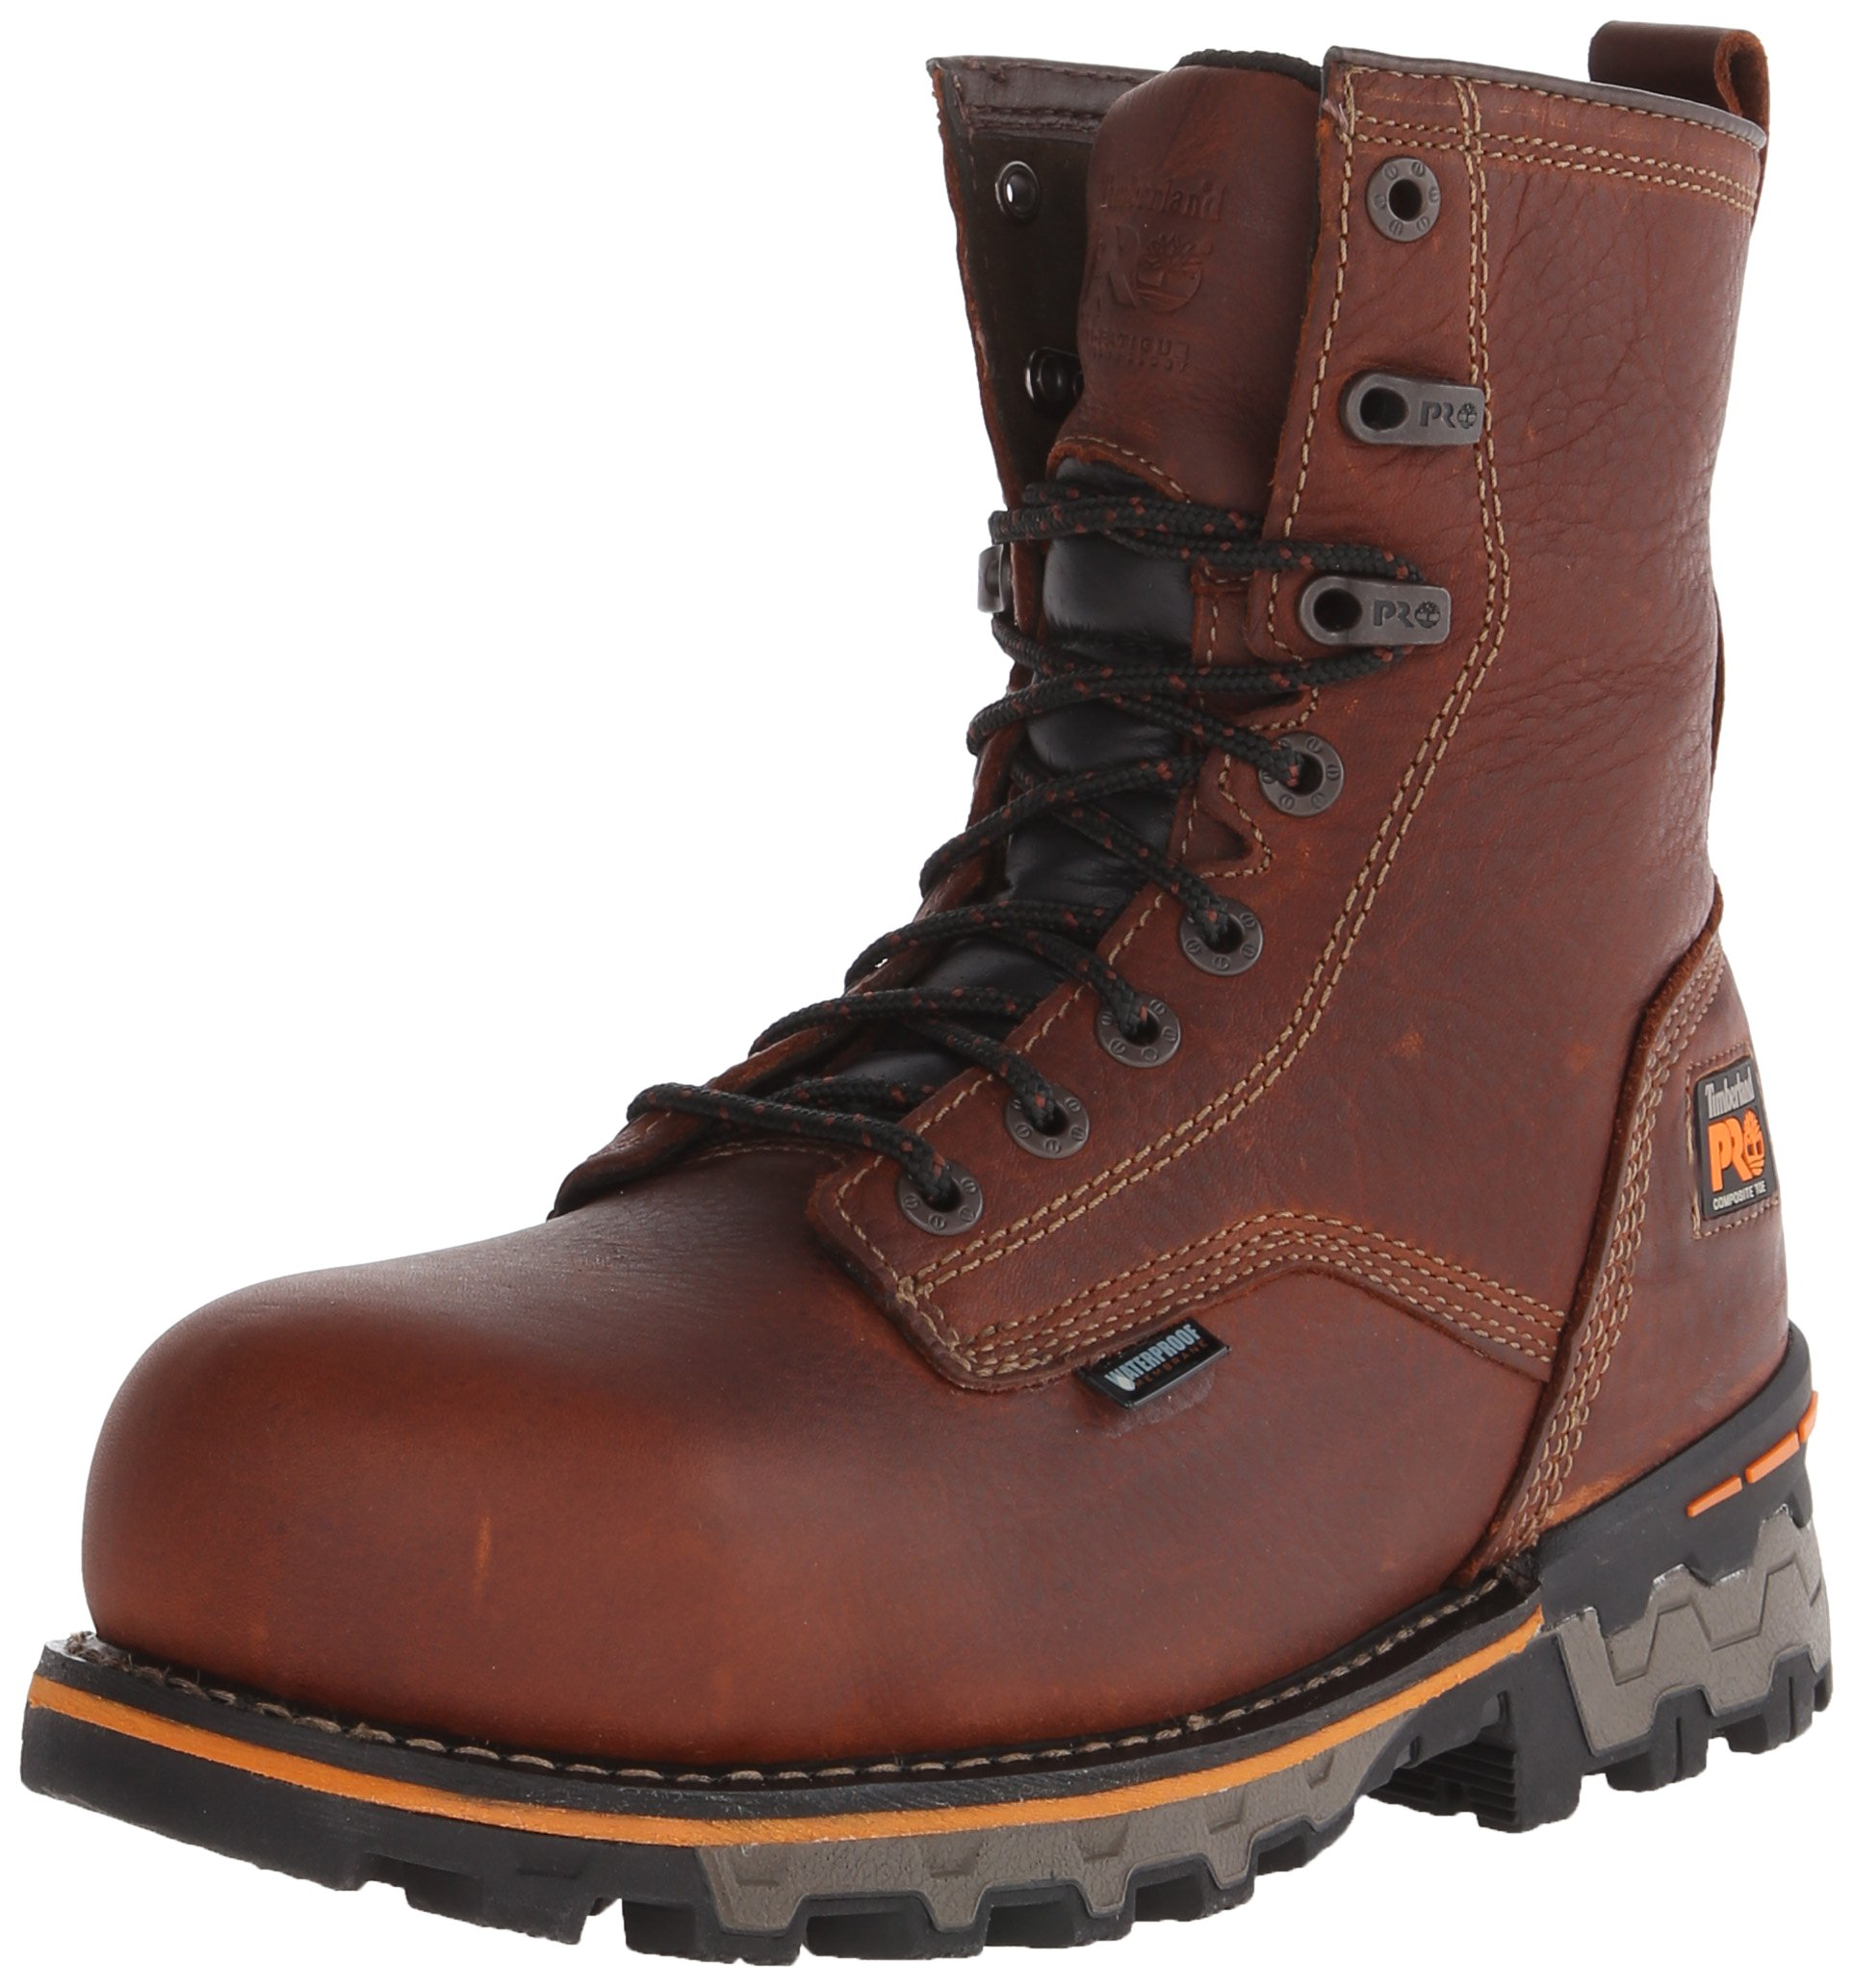 Timberland PRO Men's 8 Inch Boondock Composite Toe Waterproof Work and Hunt Boot, Brown Tumbled Leather, 7 W US by Timberland PRO (Image #1)